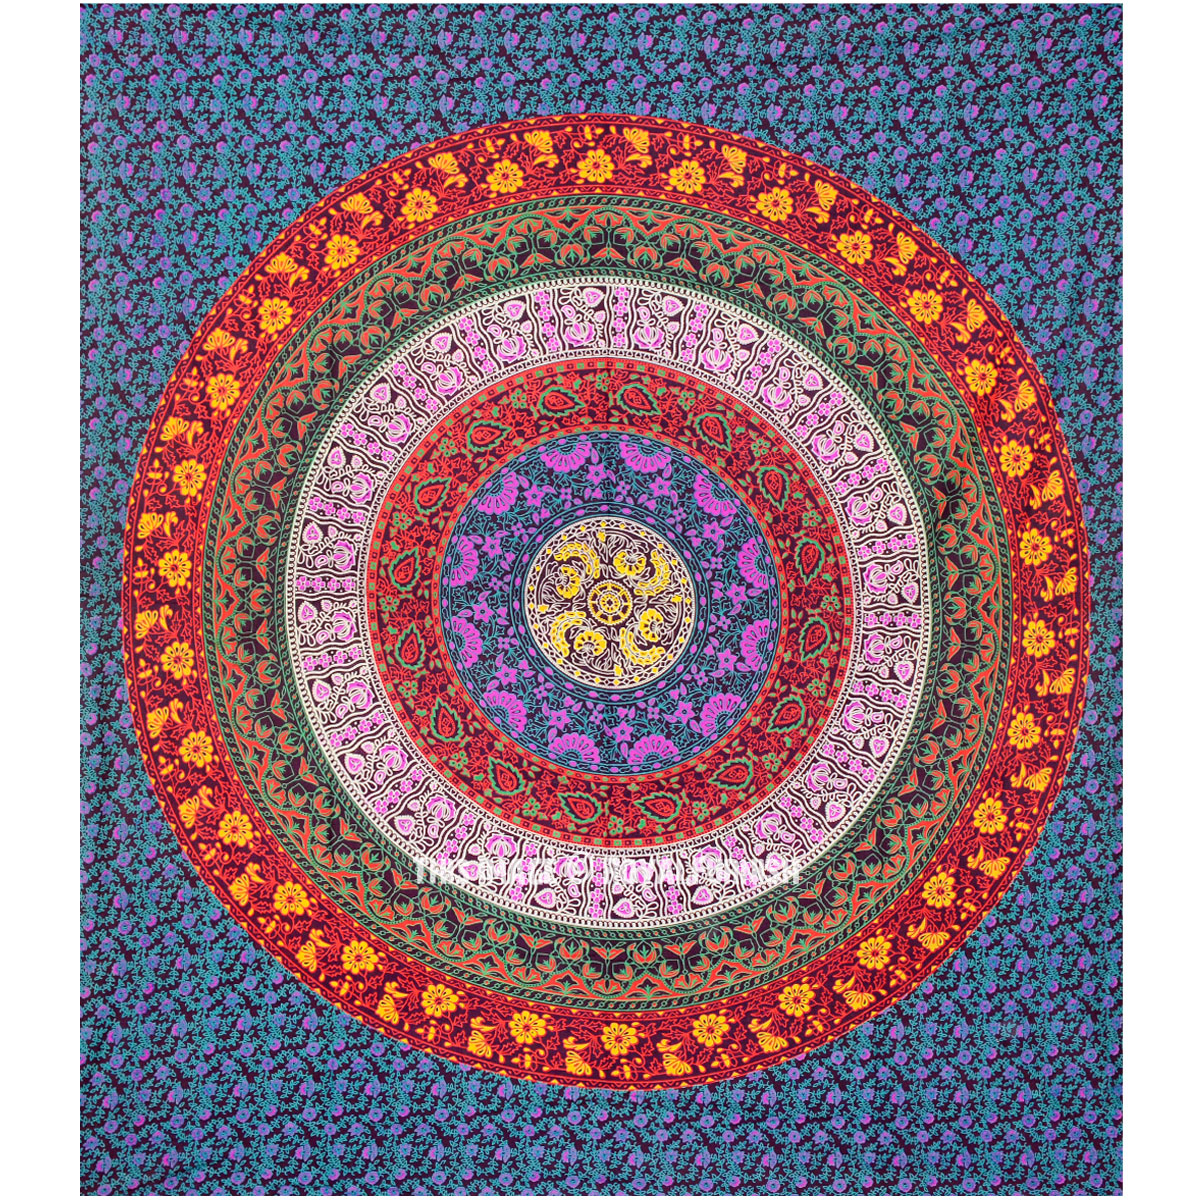 tapestry - photo #35